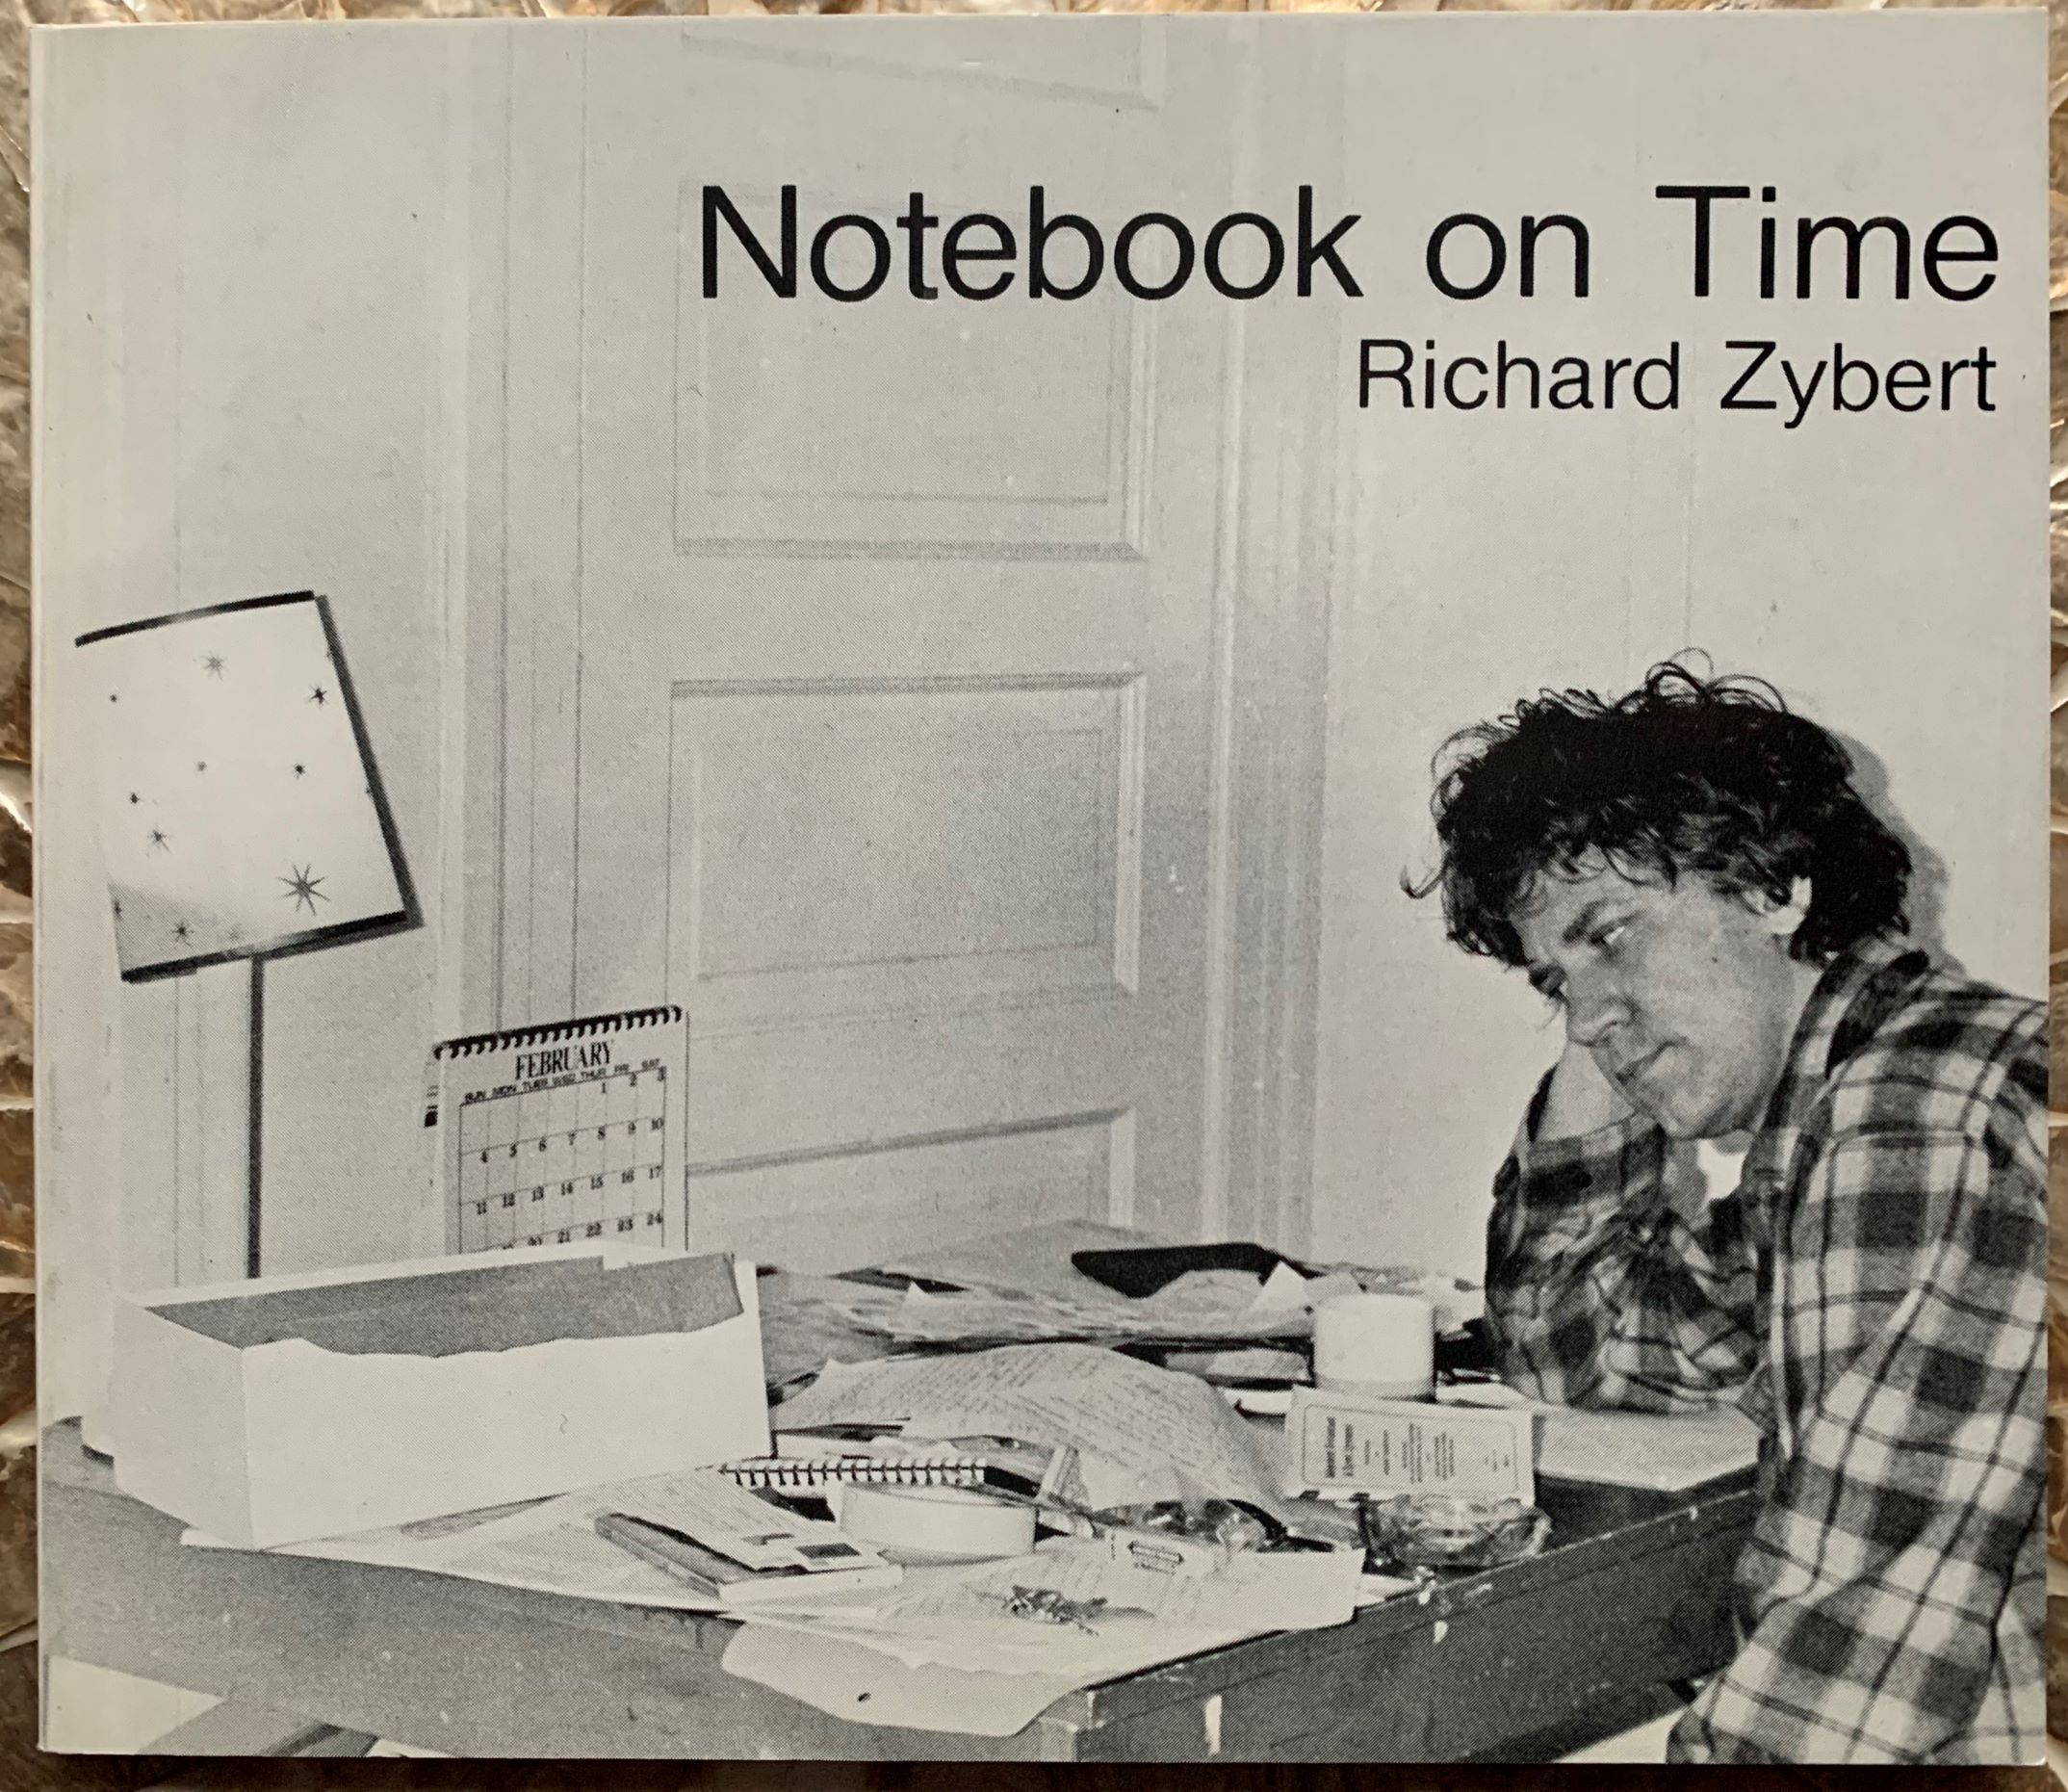 Image for Richard Zybert, Notebook on Time  (Free with purchase of any items from  the collection of Richard Zybert)